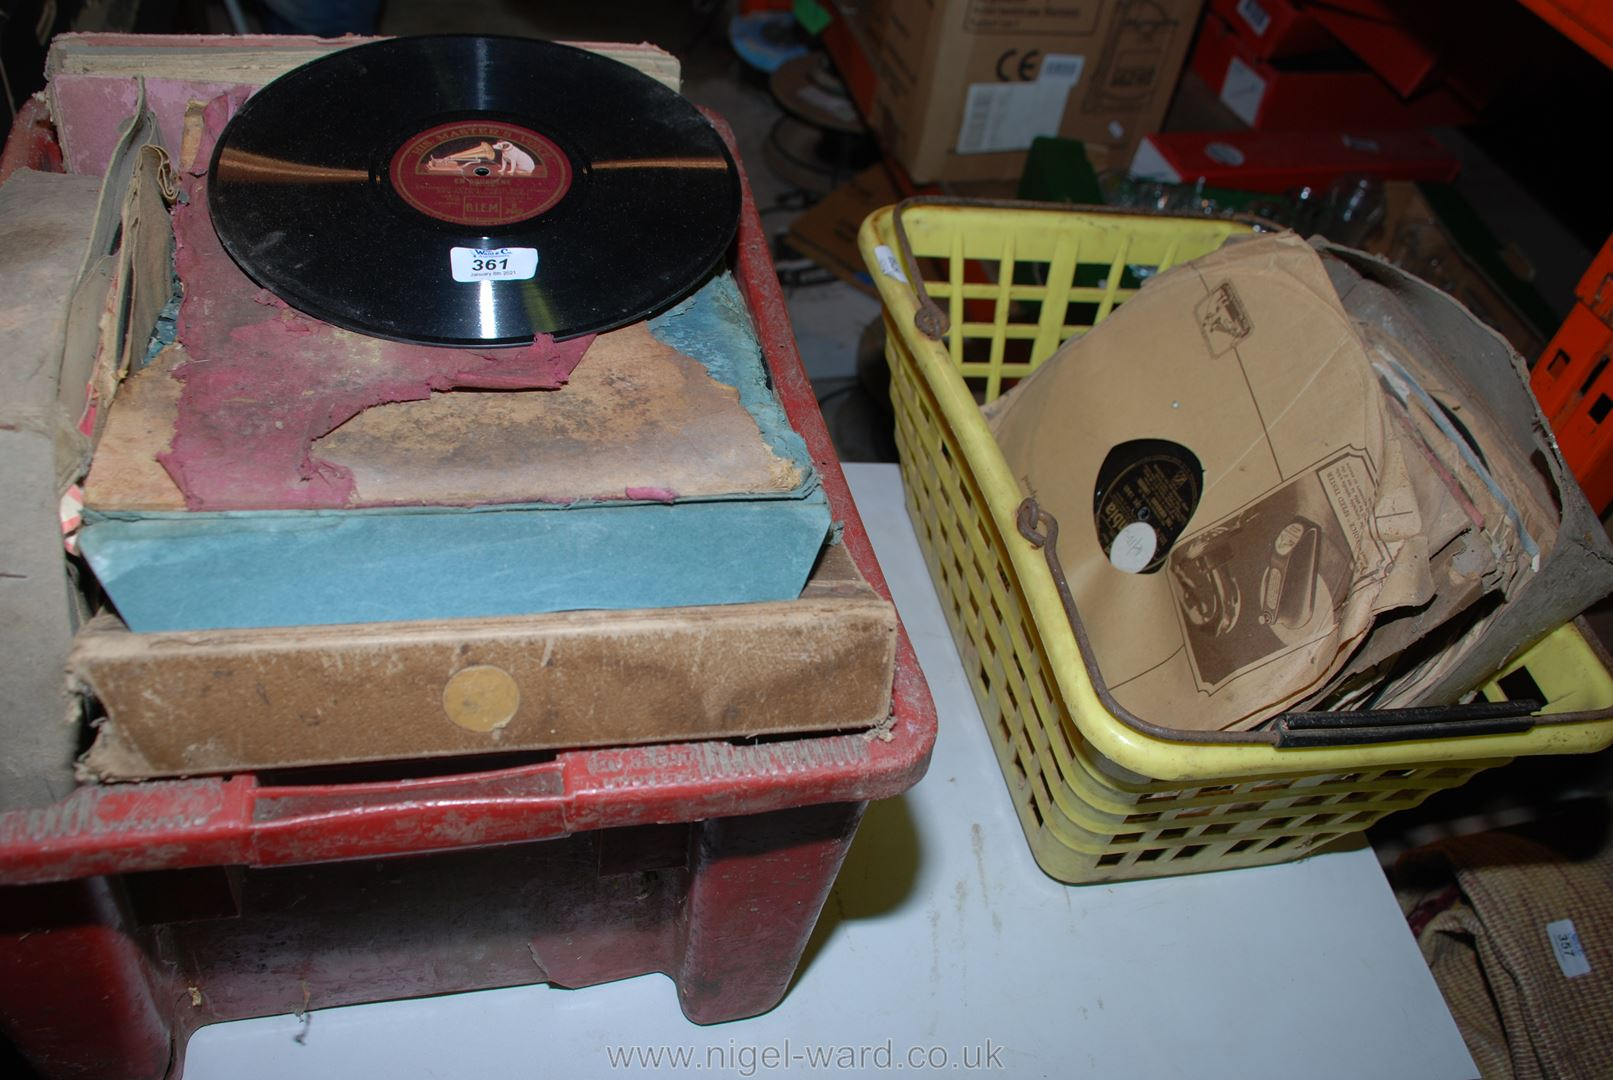 A large quantity of various gramophone records.